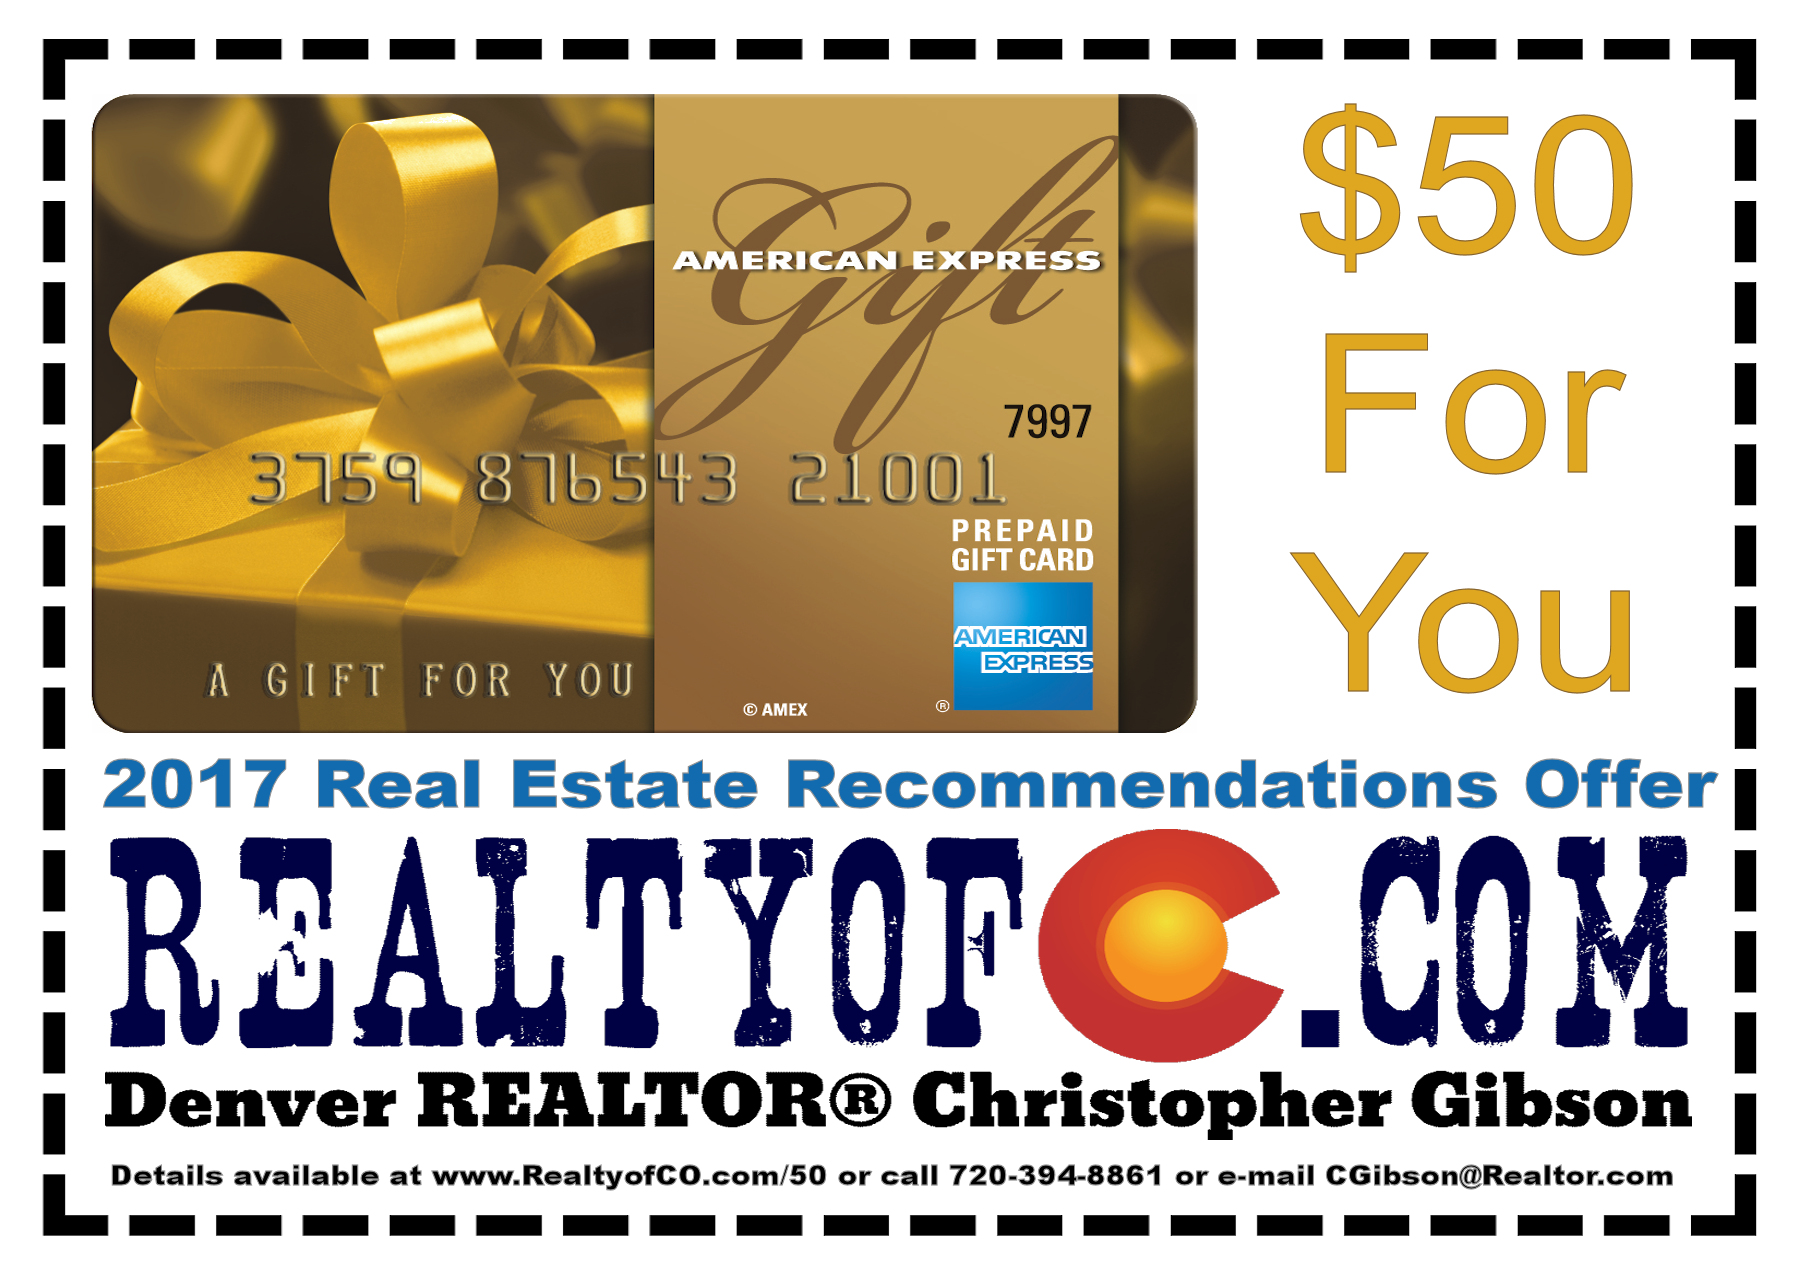 Recommend Denver Realtor Christopher Gibson